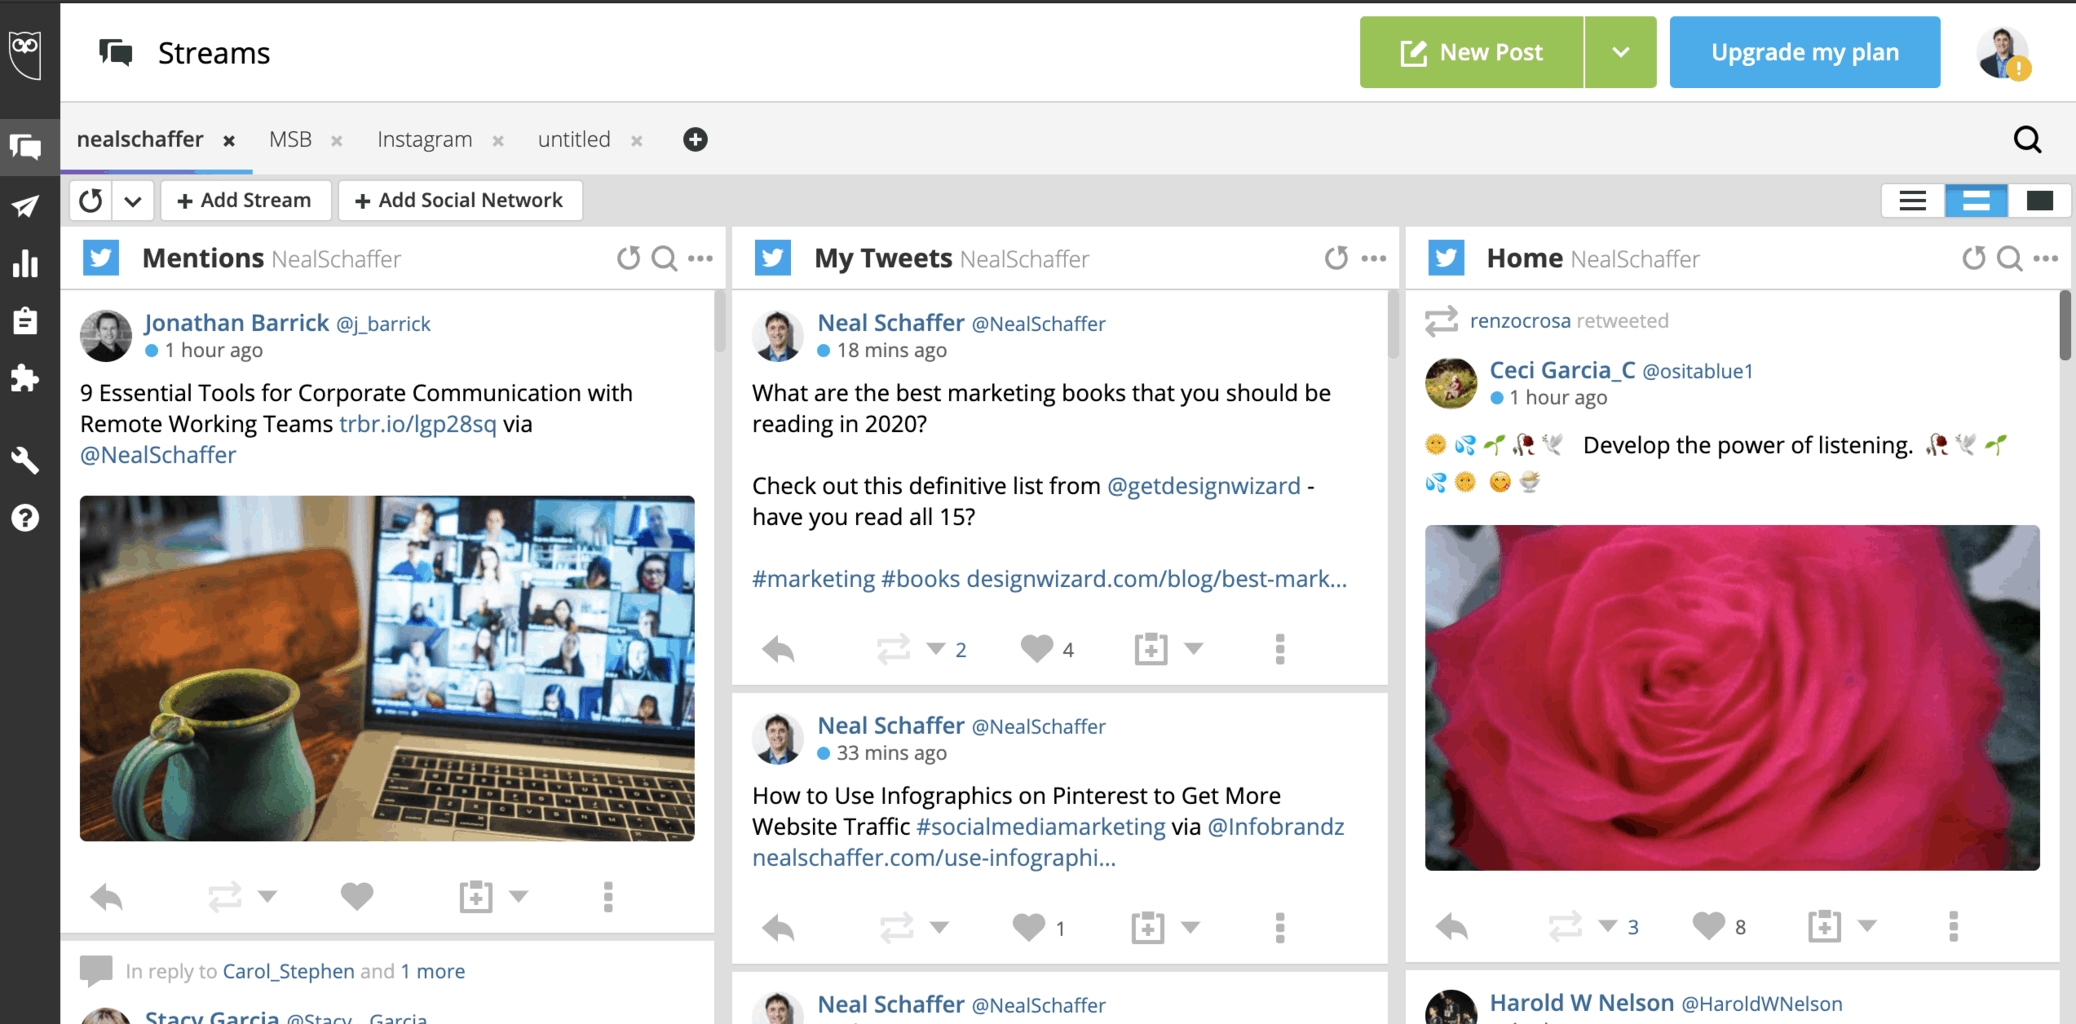 hootsuite social media dashboard screenshot